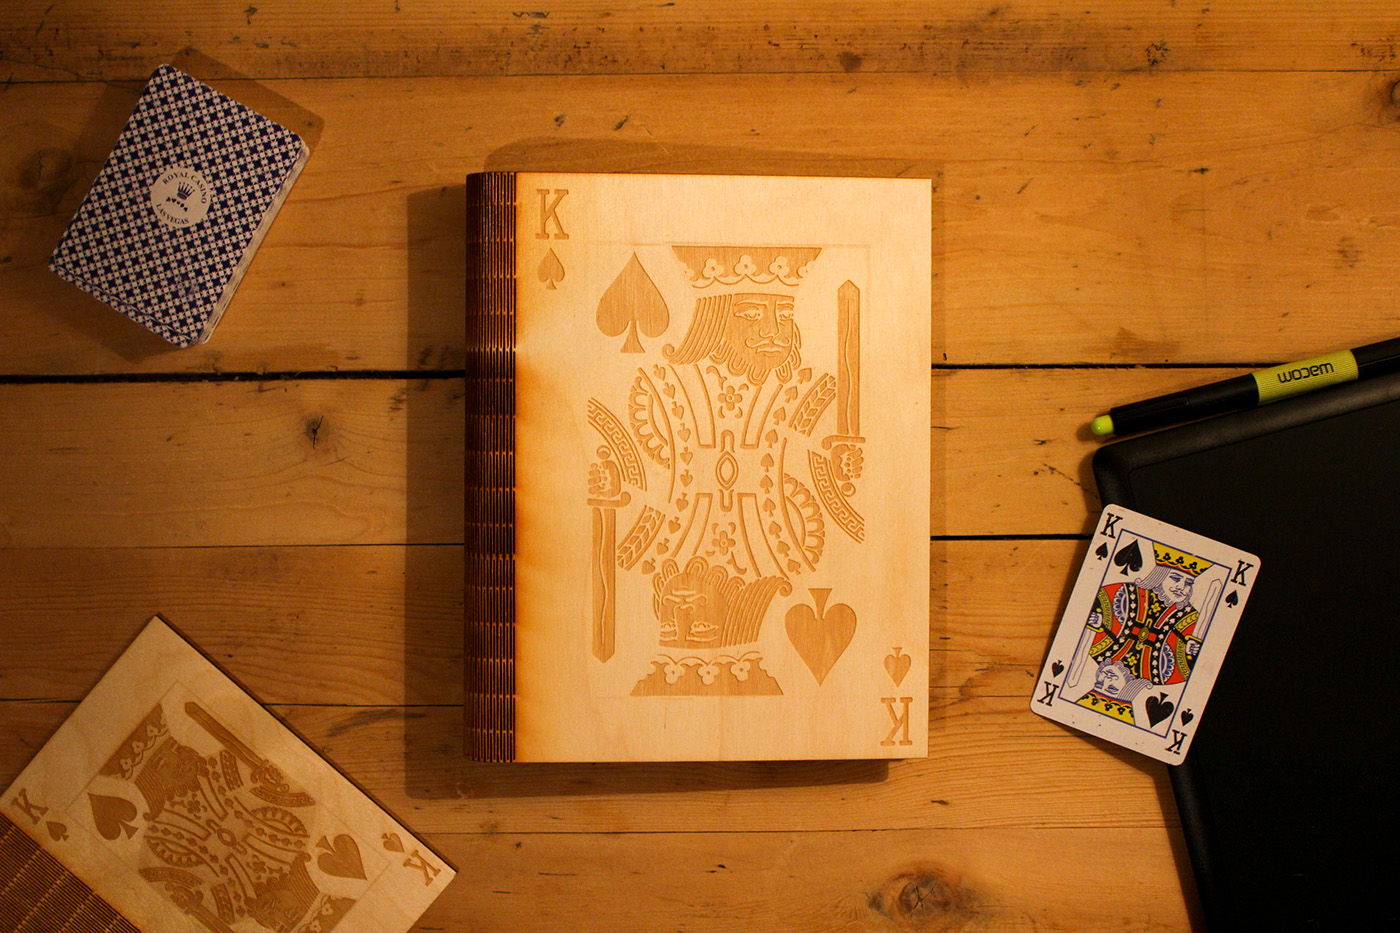 wood laser cutting laser cutting book design book engraved engraving graphic typography